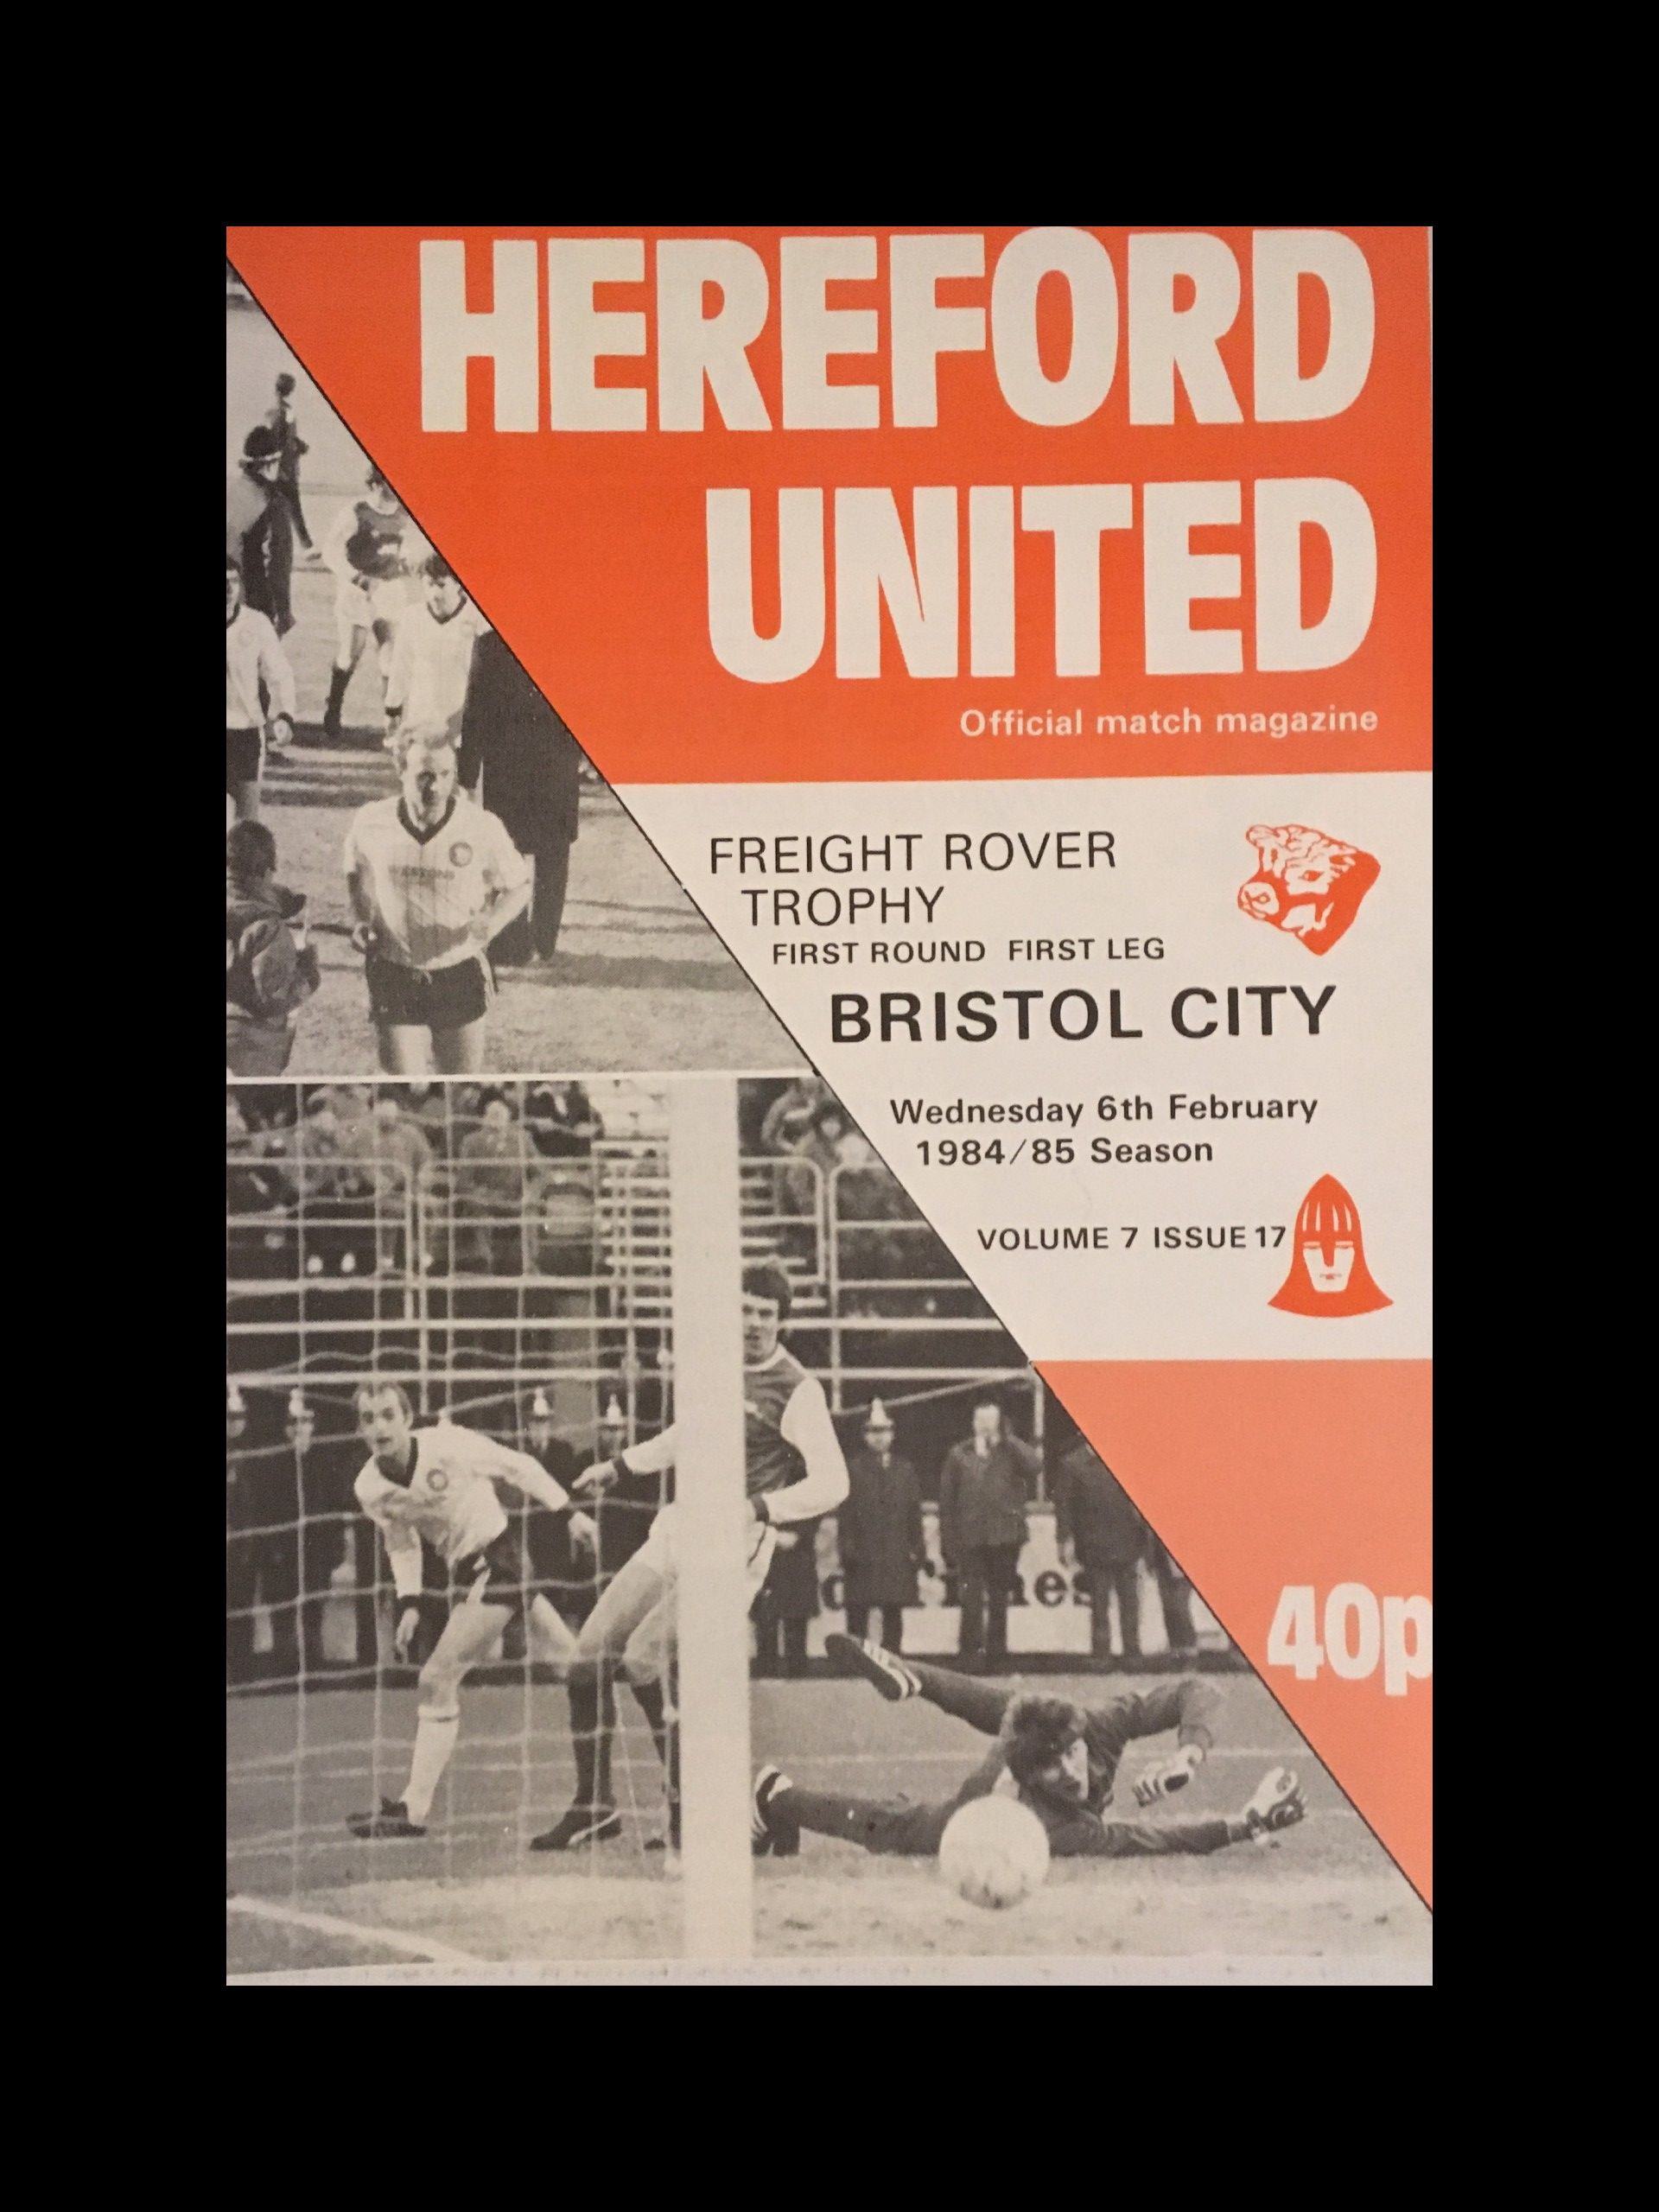 Hereford United v Bristol City 06-02-85 Programme